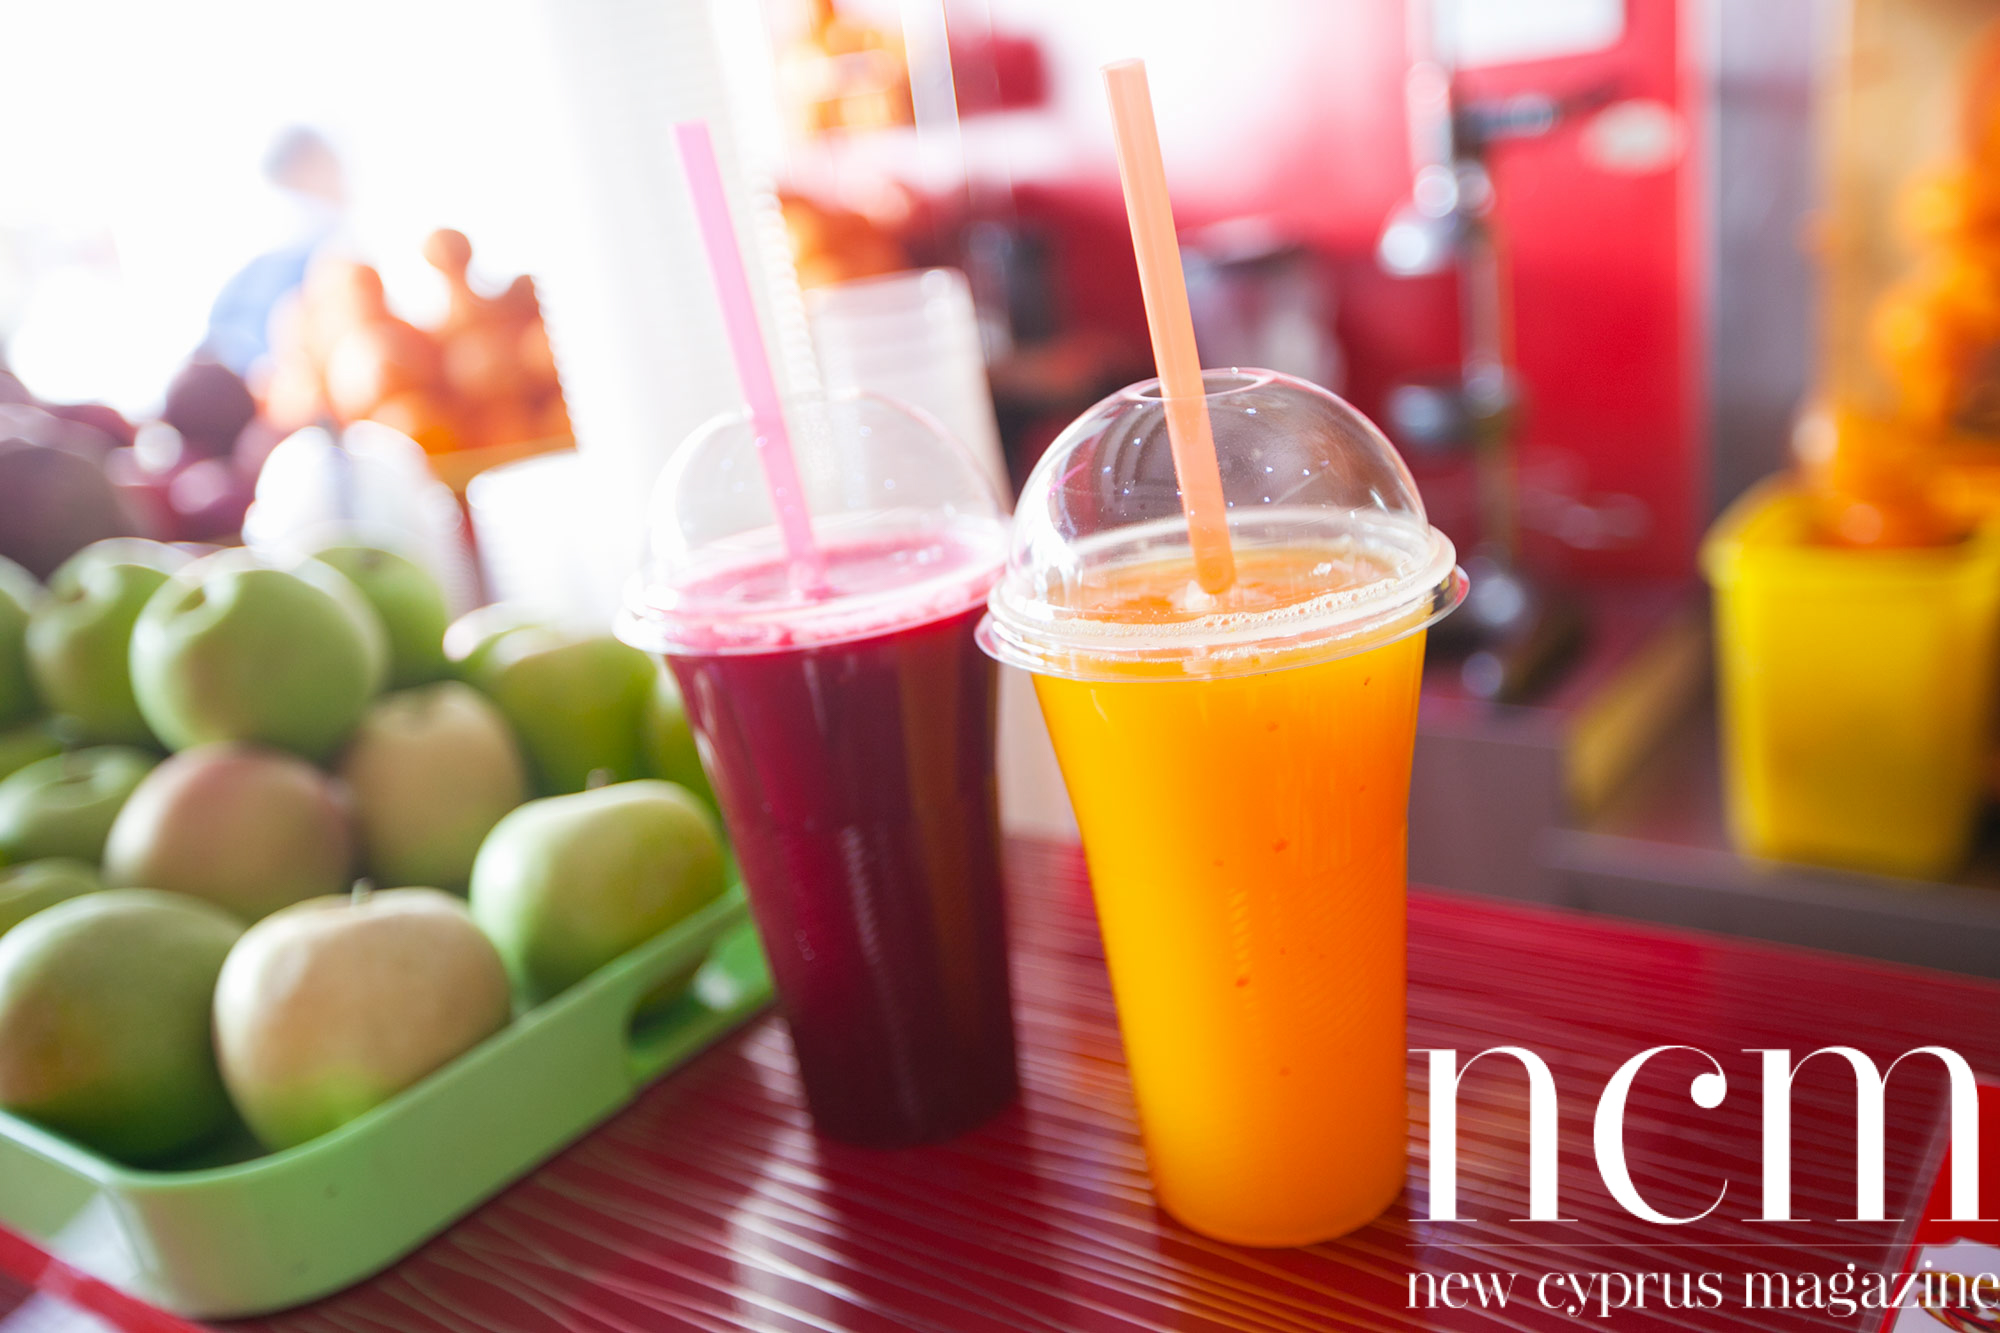 Delicious juices served in Kyrenia